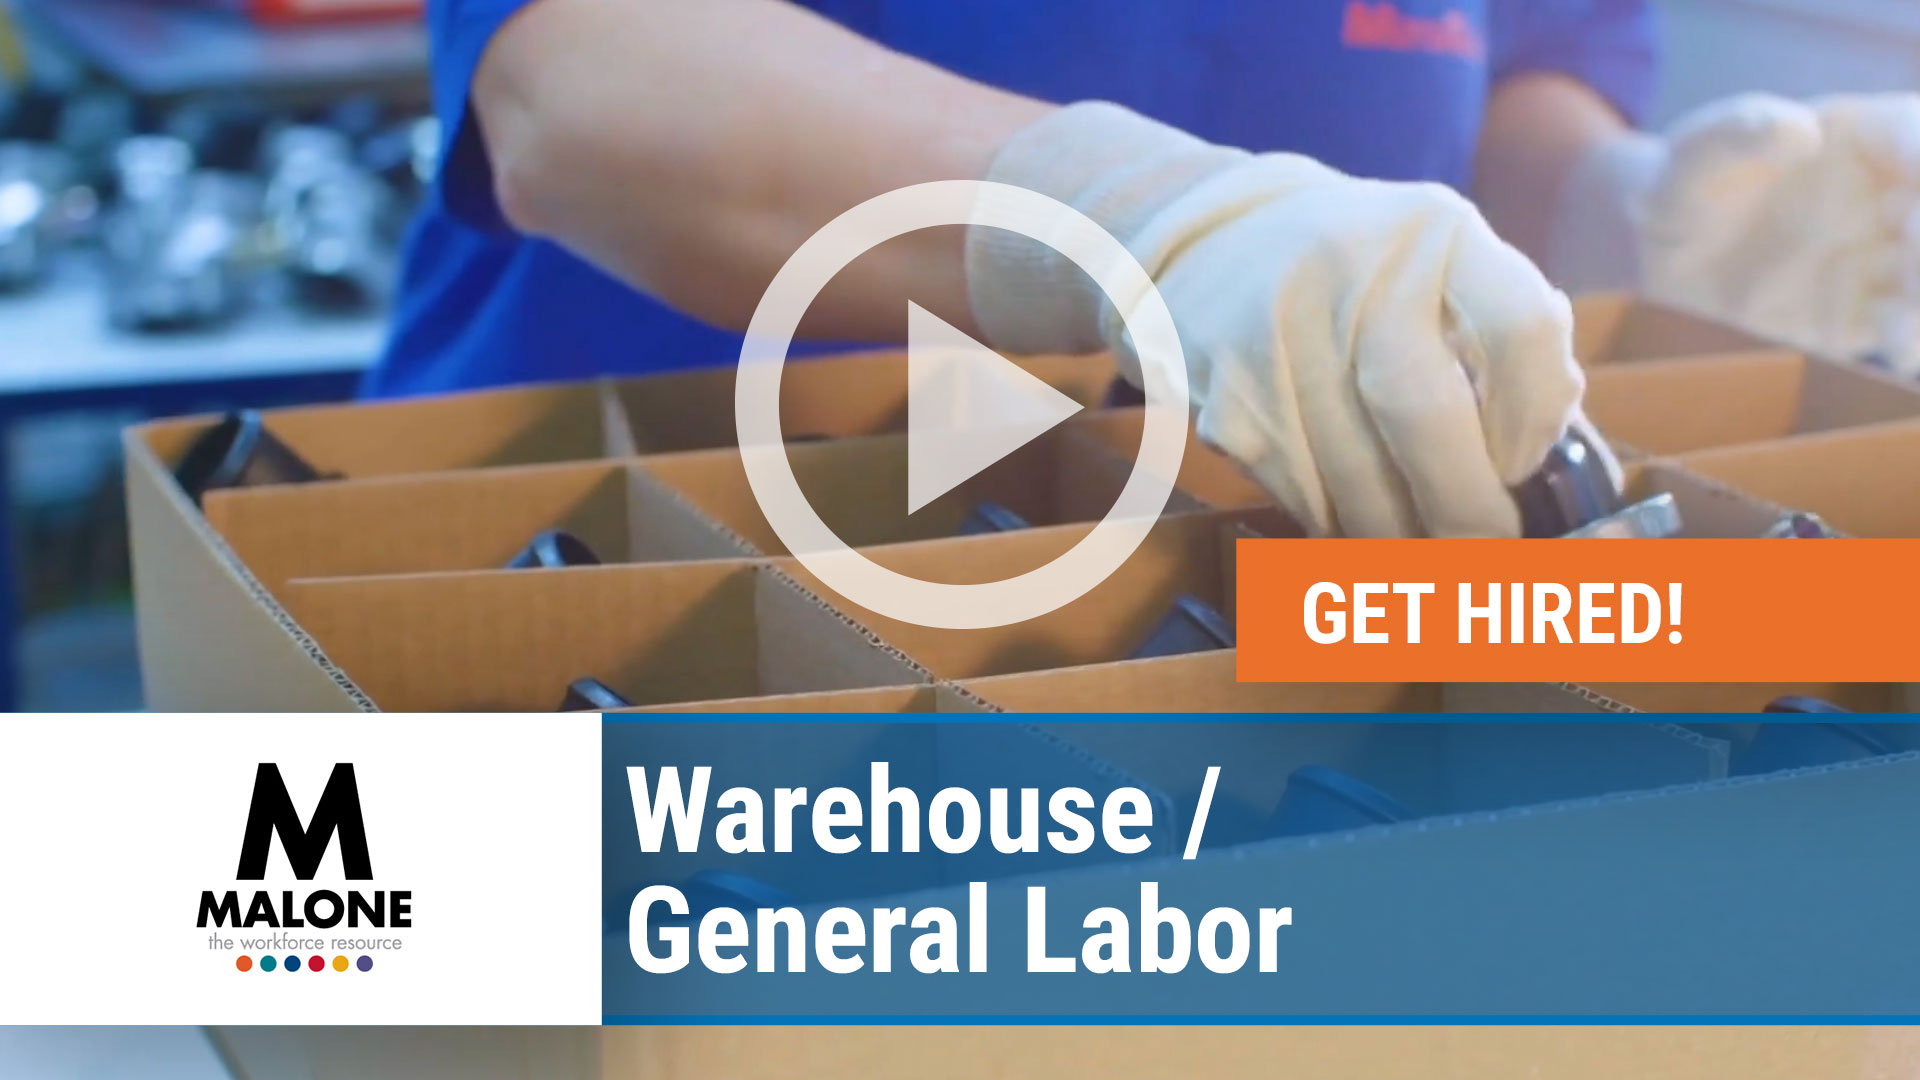 Watch our careers video for available job opening Warehouse - General Labor in Fairburn, Georgia